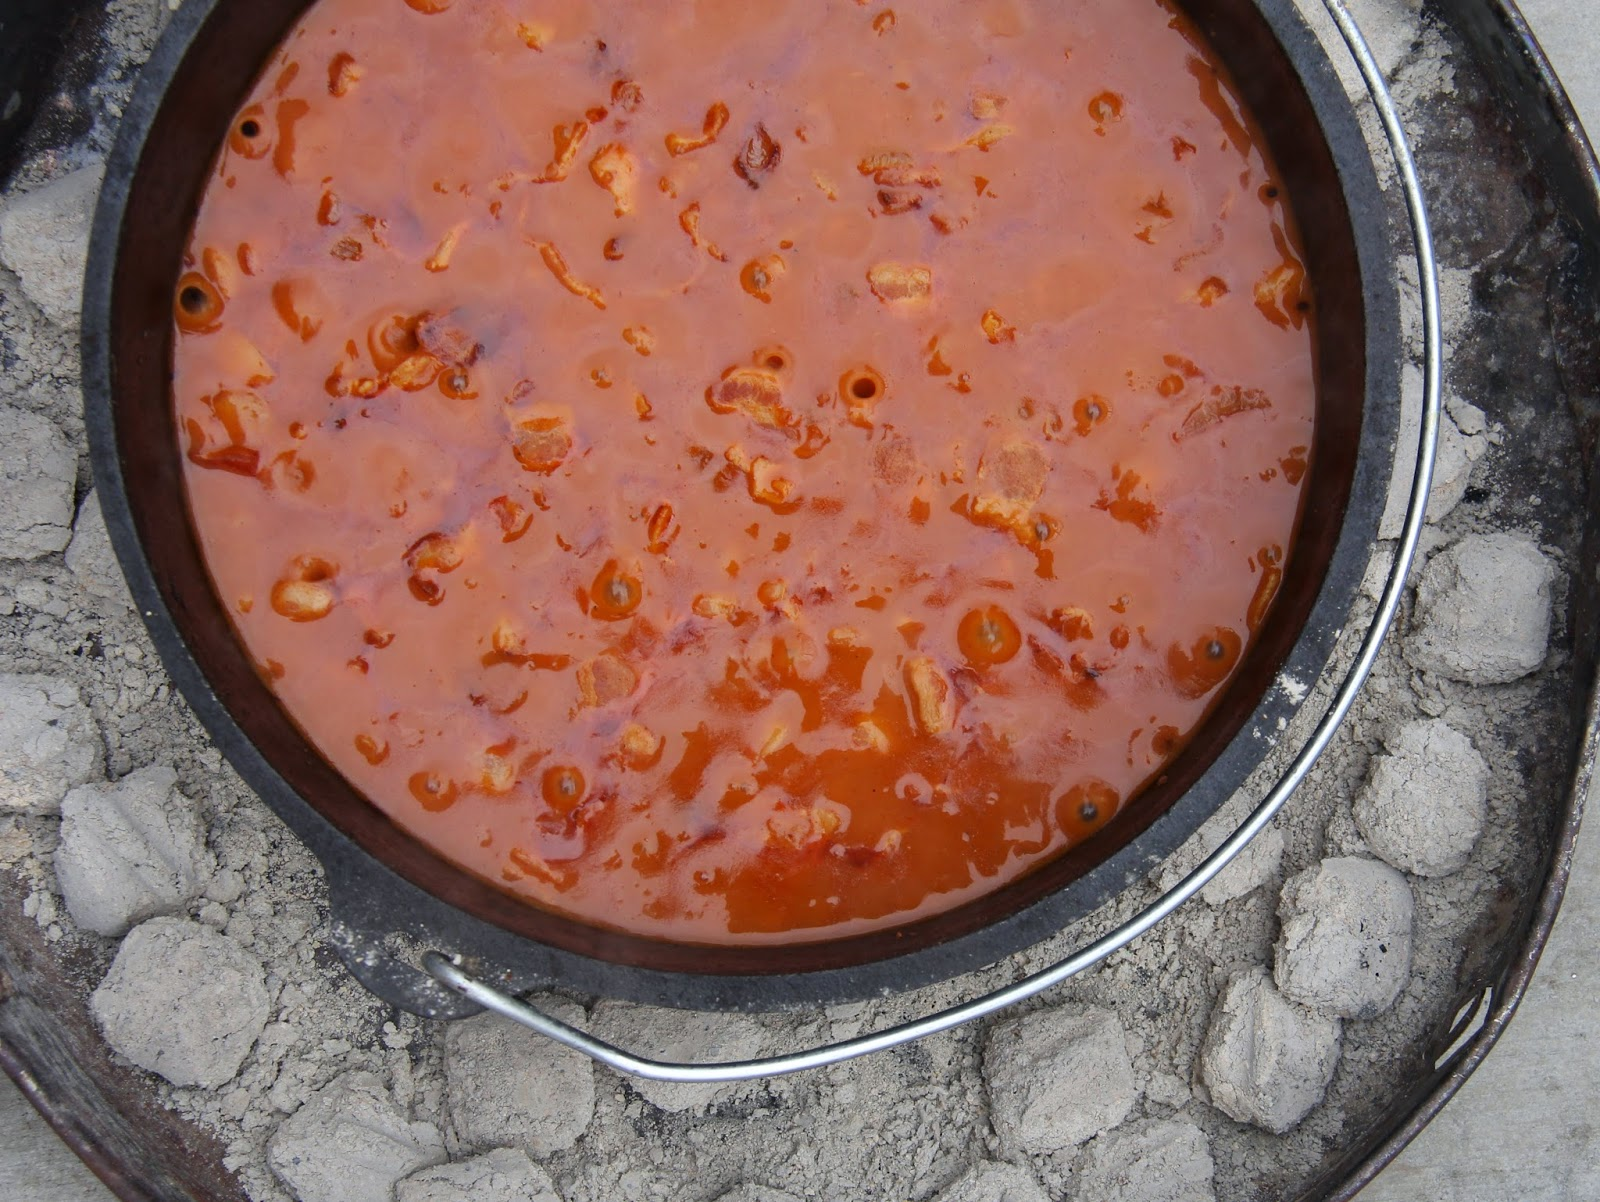 molasses dutch oven baked beans